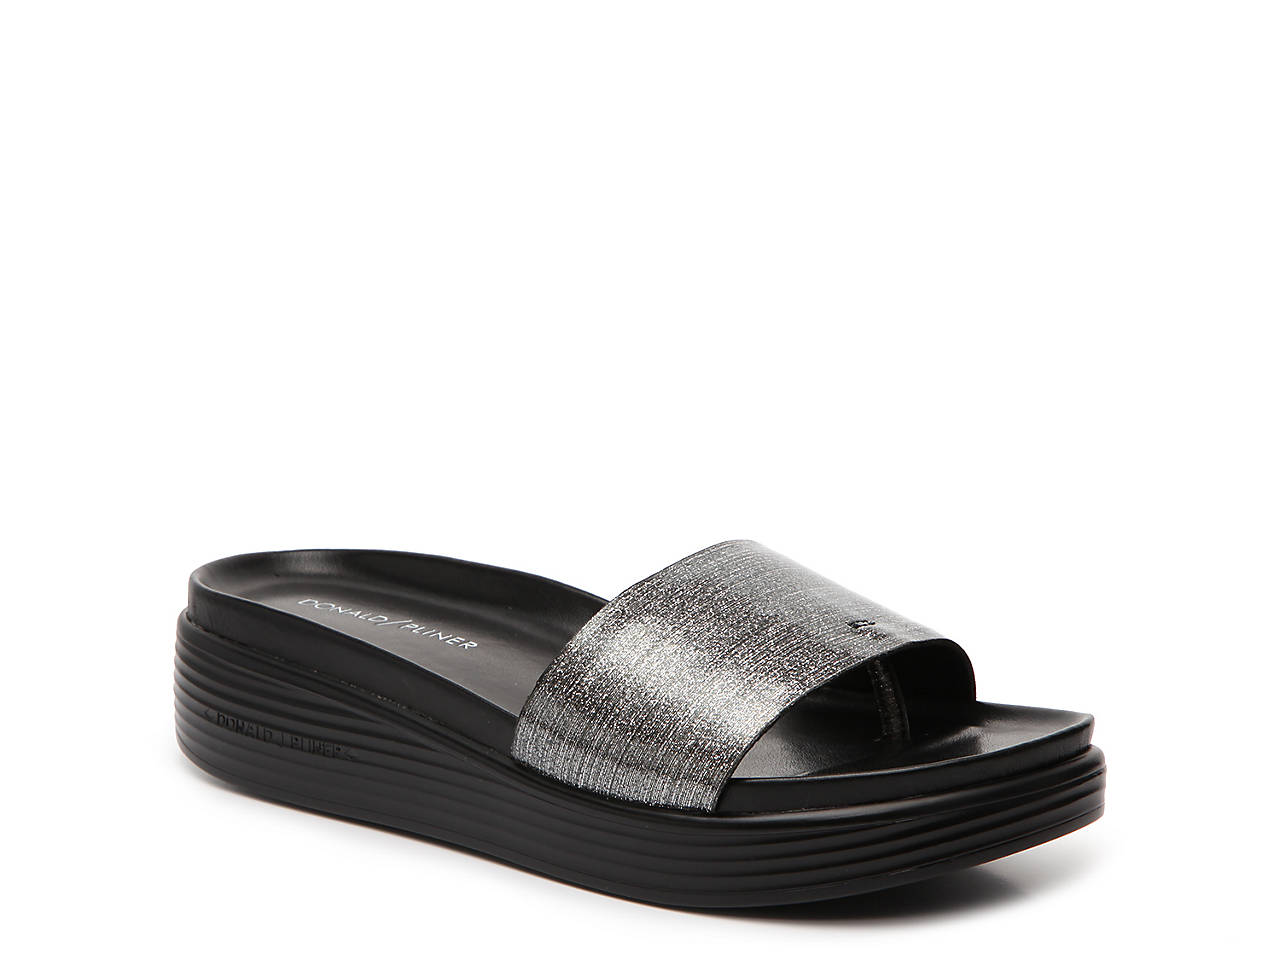 Fiji Slide Sandal by Donald Pliner